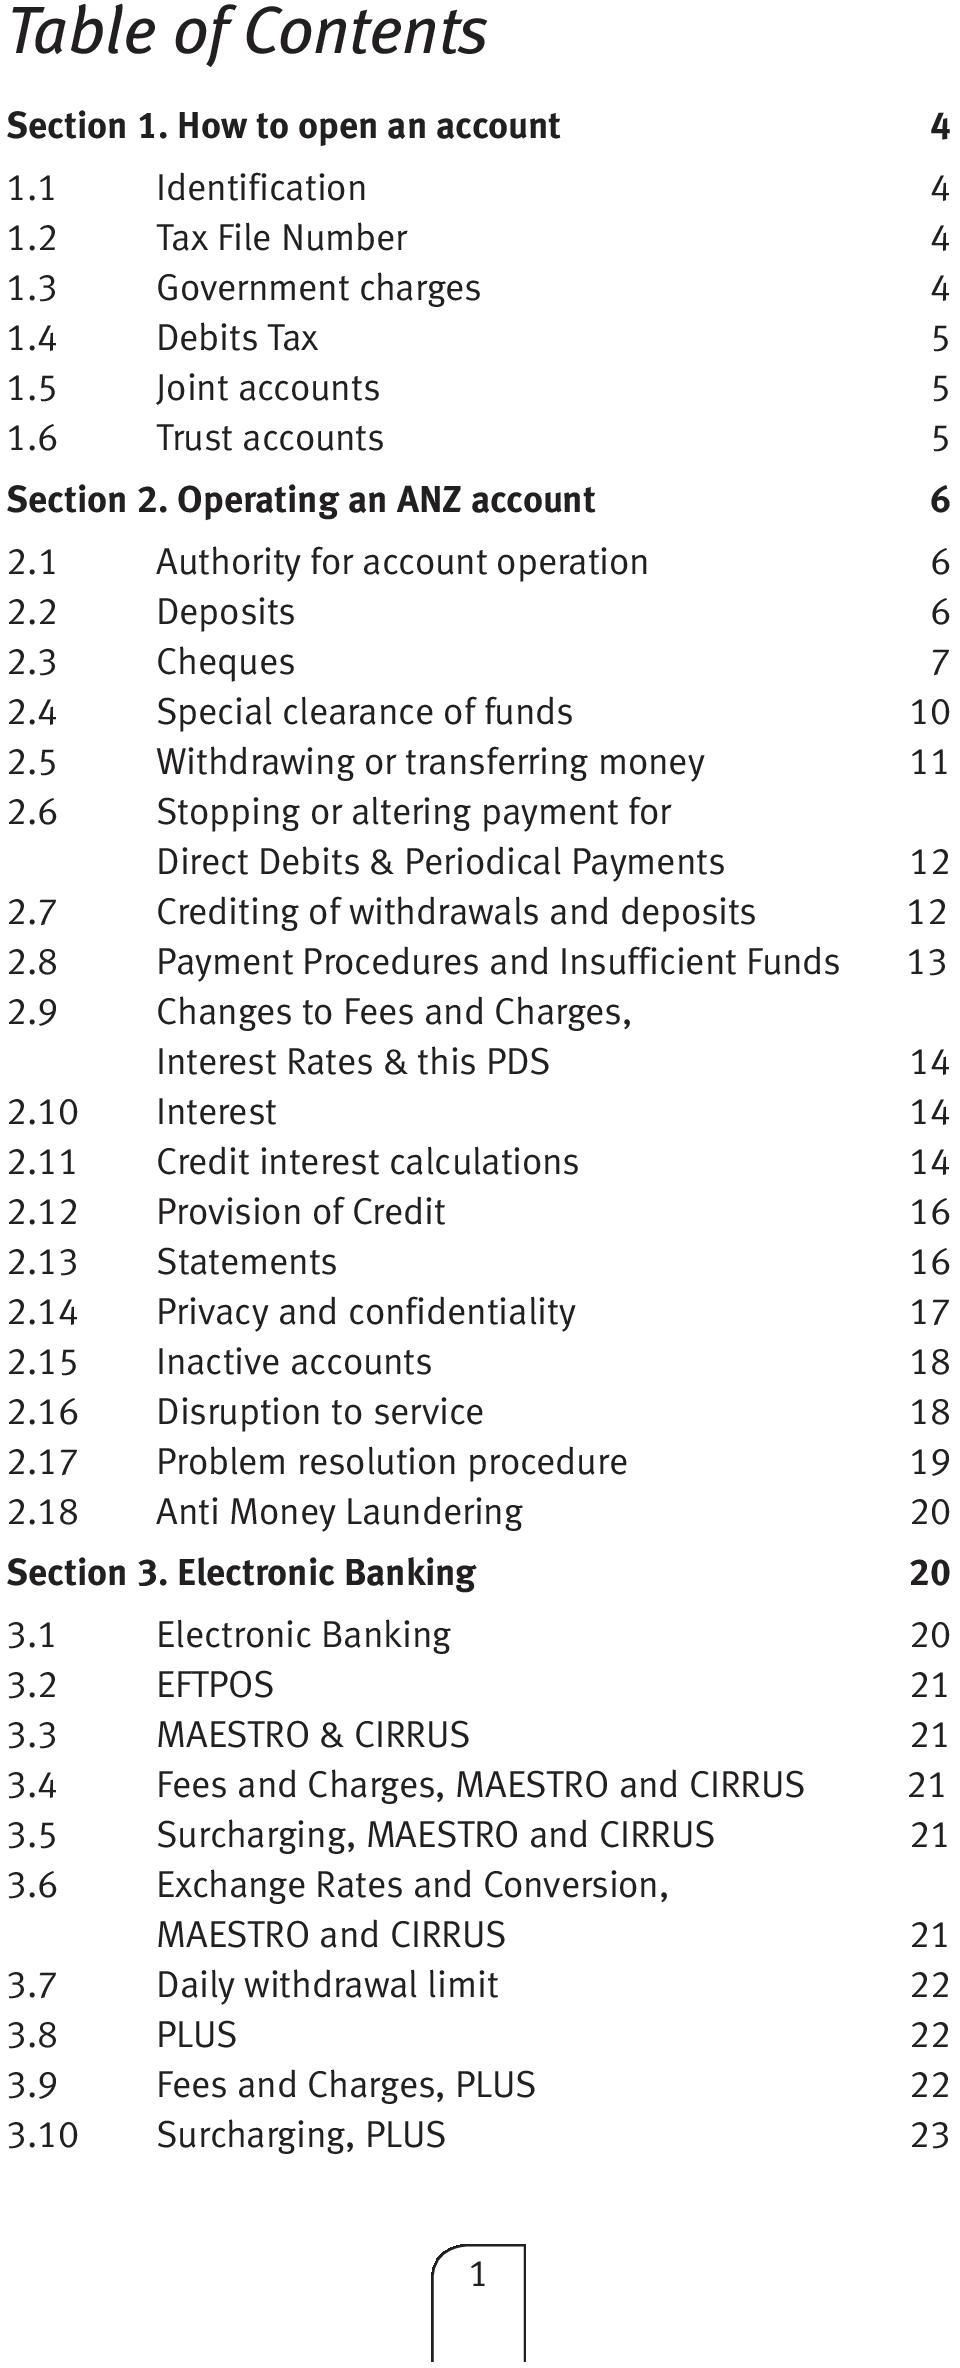 6 Stopping or altering payment for Direct Debits & Periodical Payments 12 2.7 Crediting of withdrawals and deposits 12 2.8 Payment Procedures and Insufficient Funds 13 2.